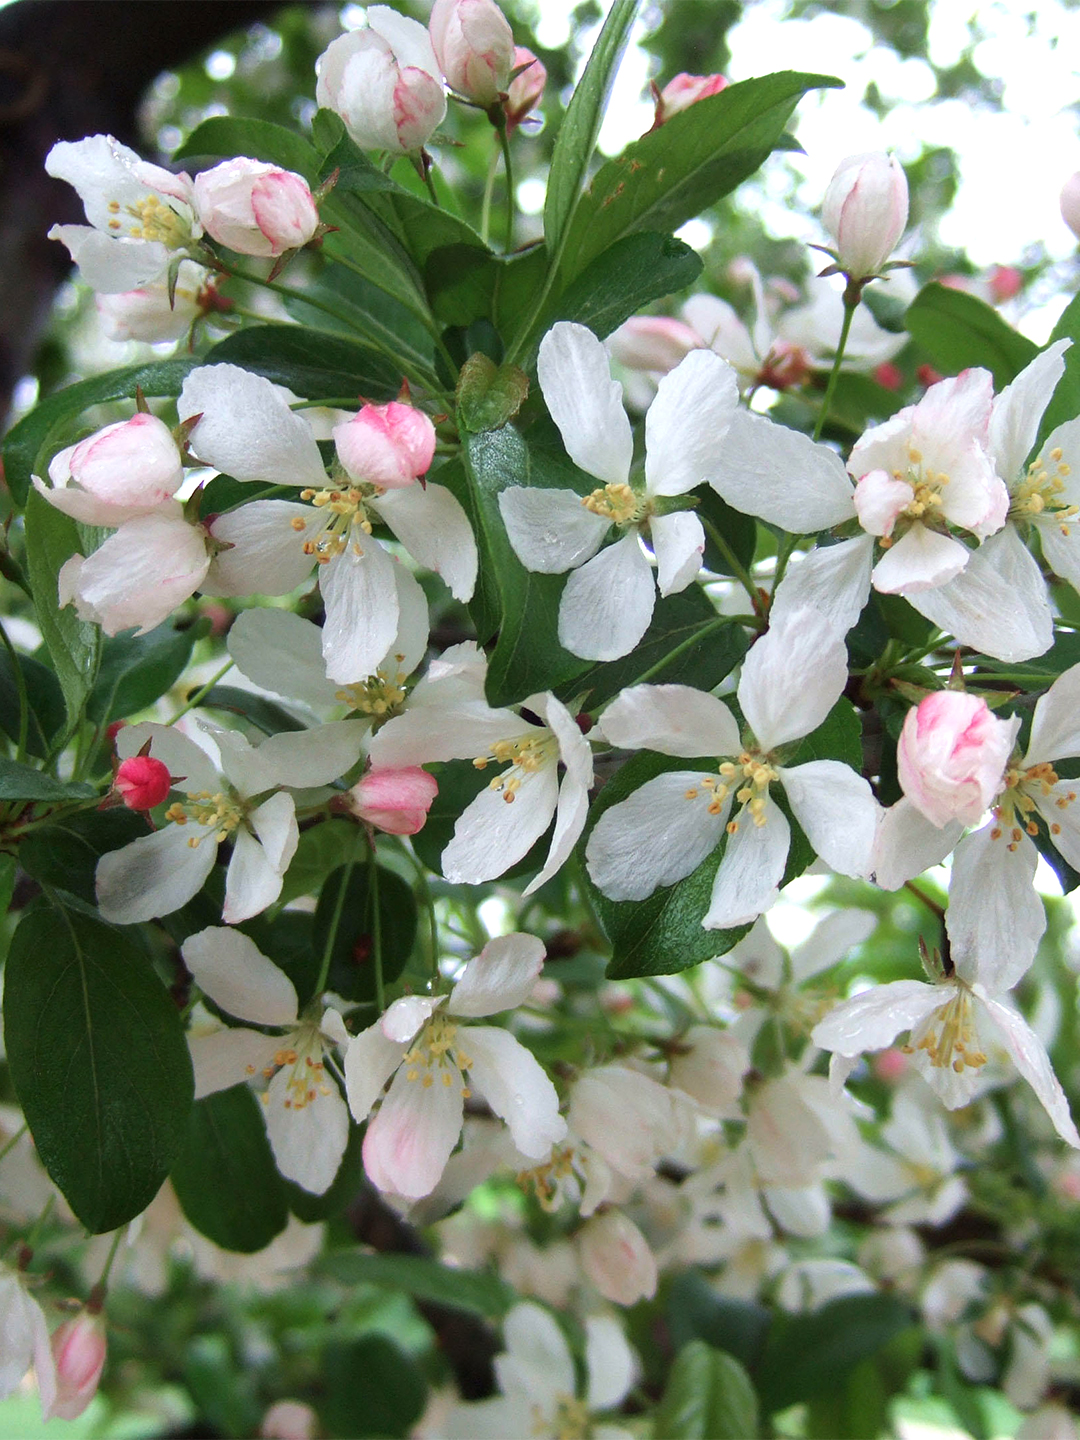 Harvest Gold crabapple blooms with pink and white flowers